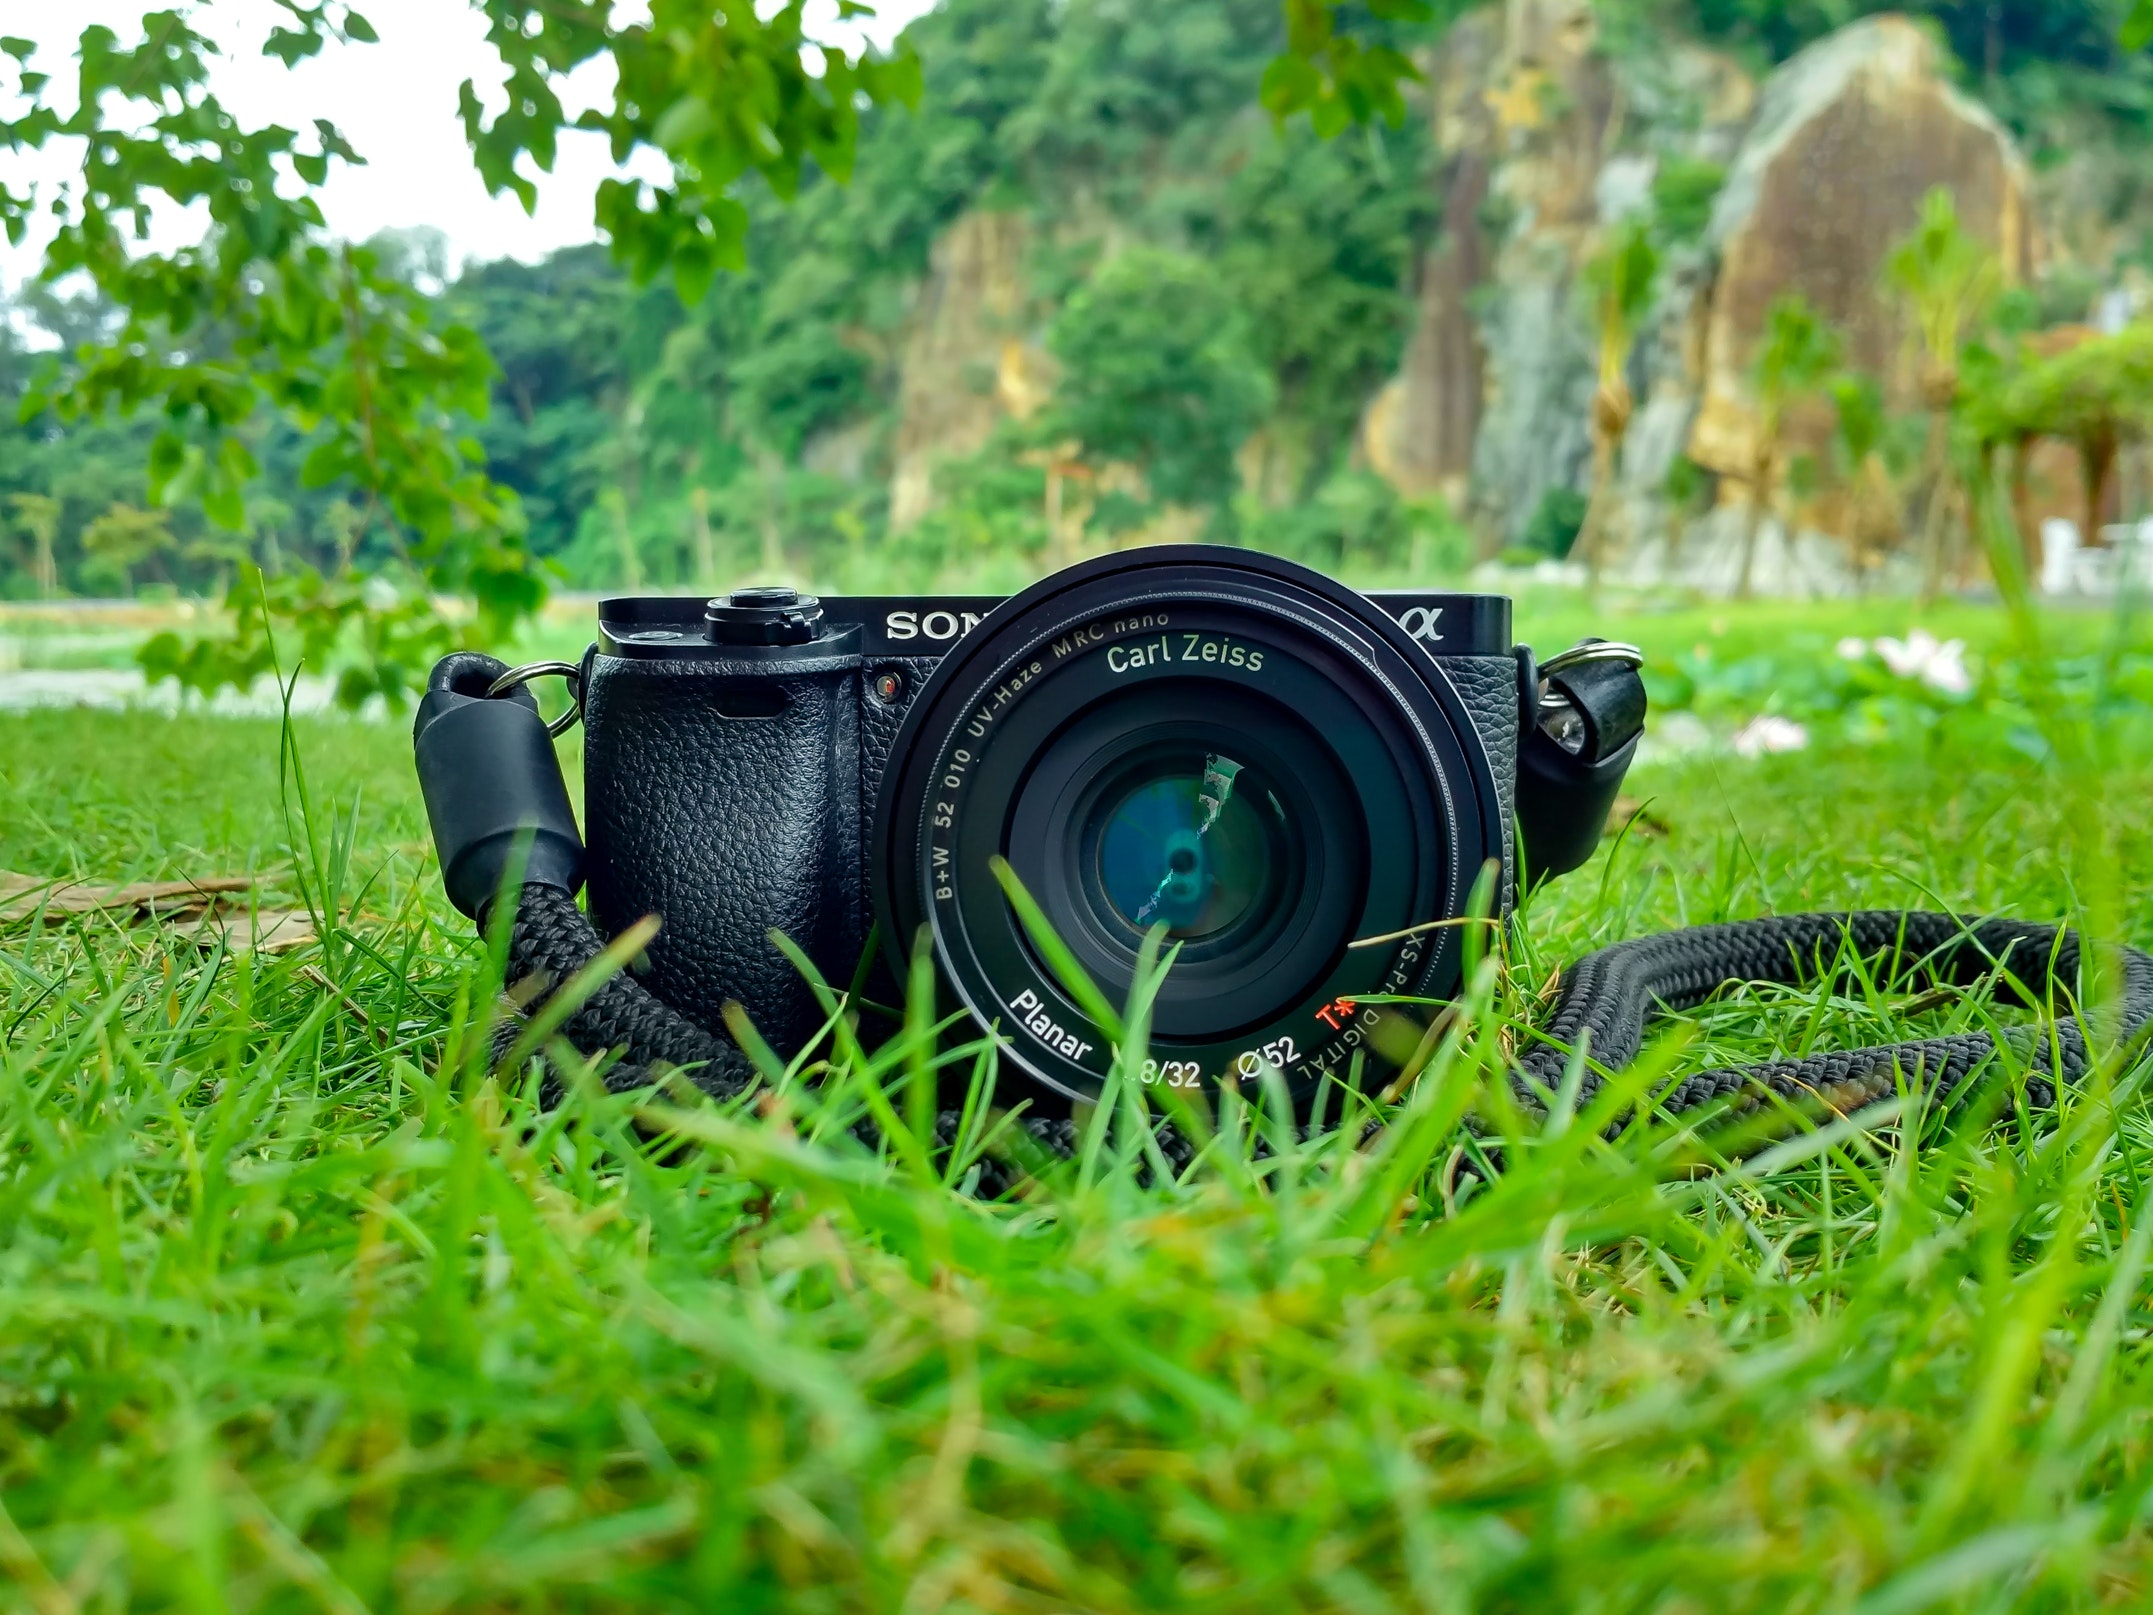 Camera on ground in grass